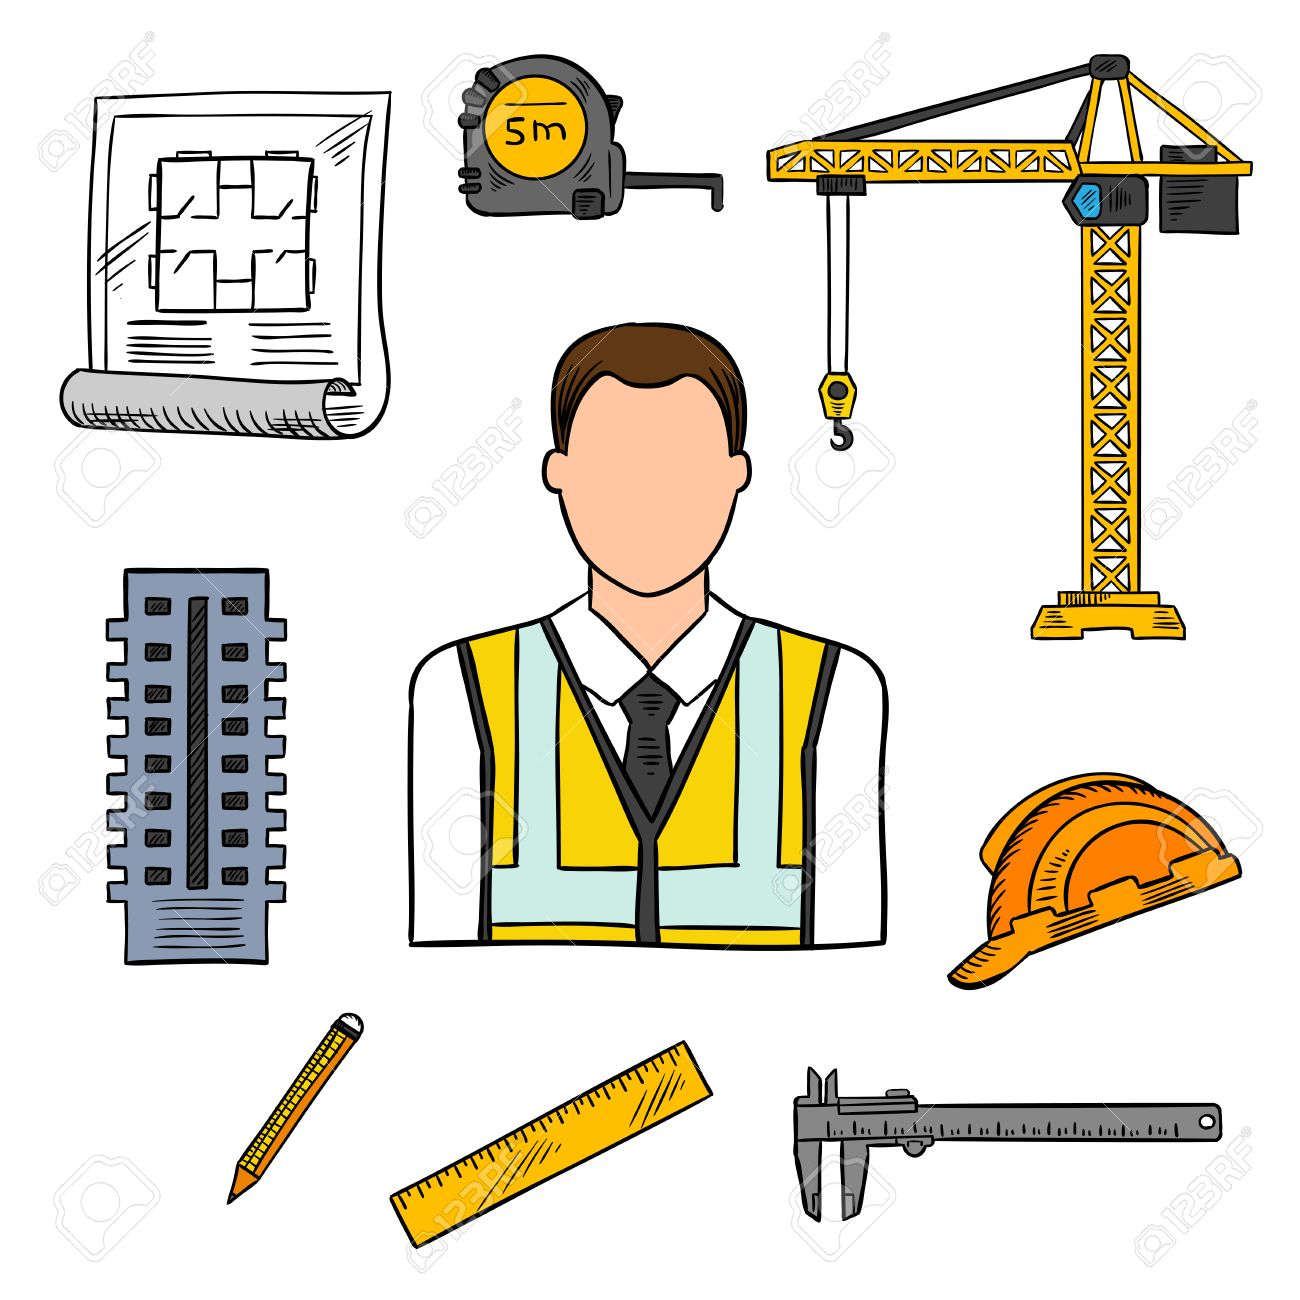 civil engineering professions design of architectural engineer